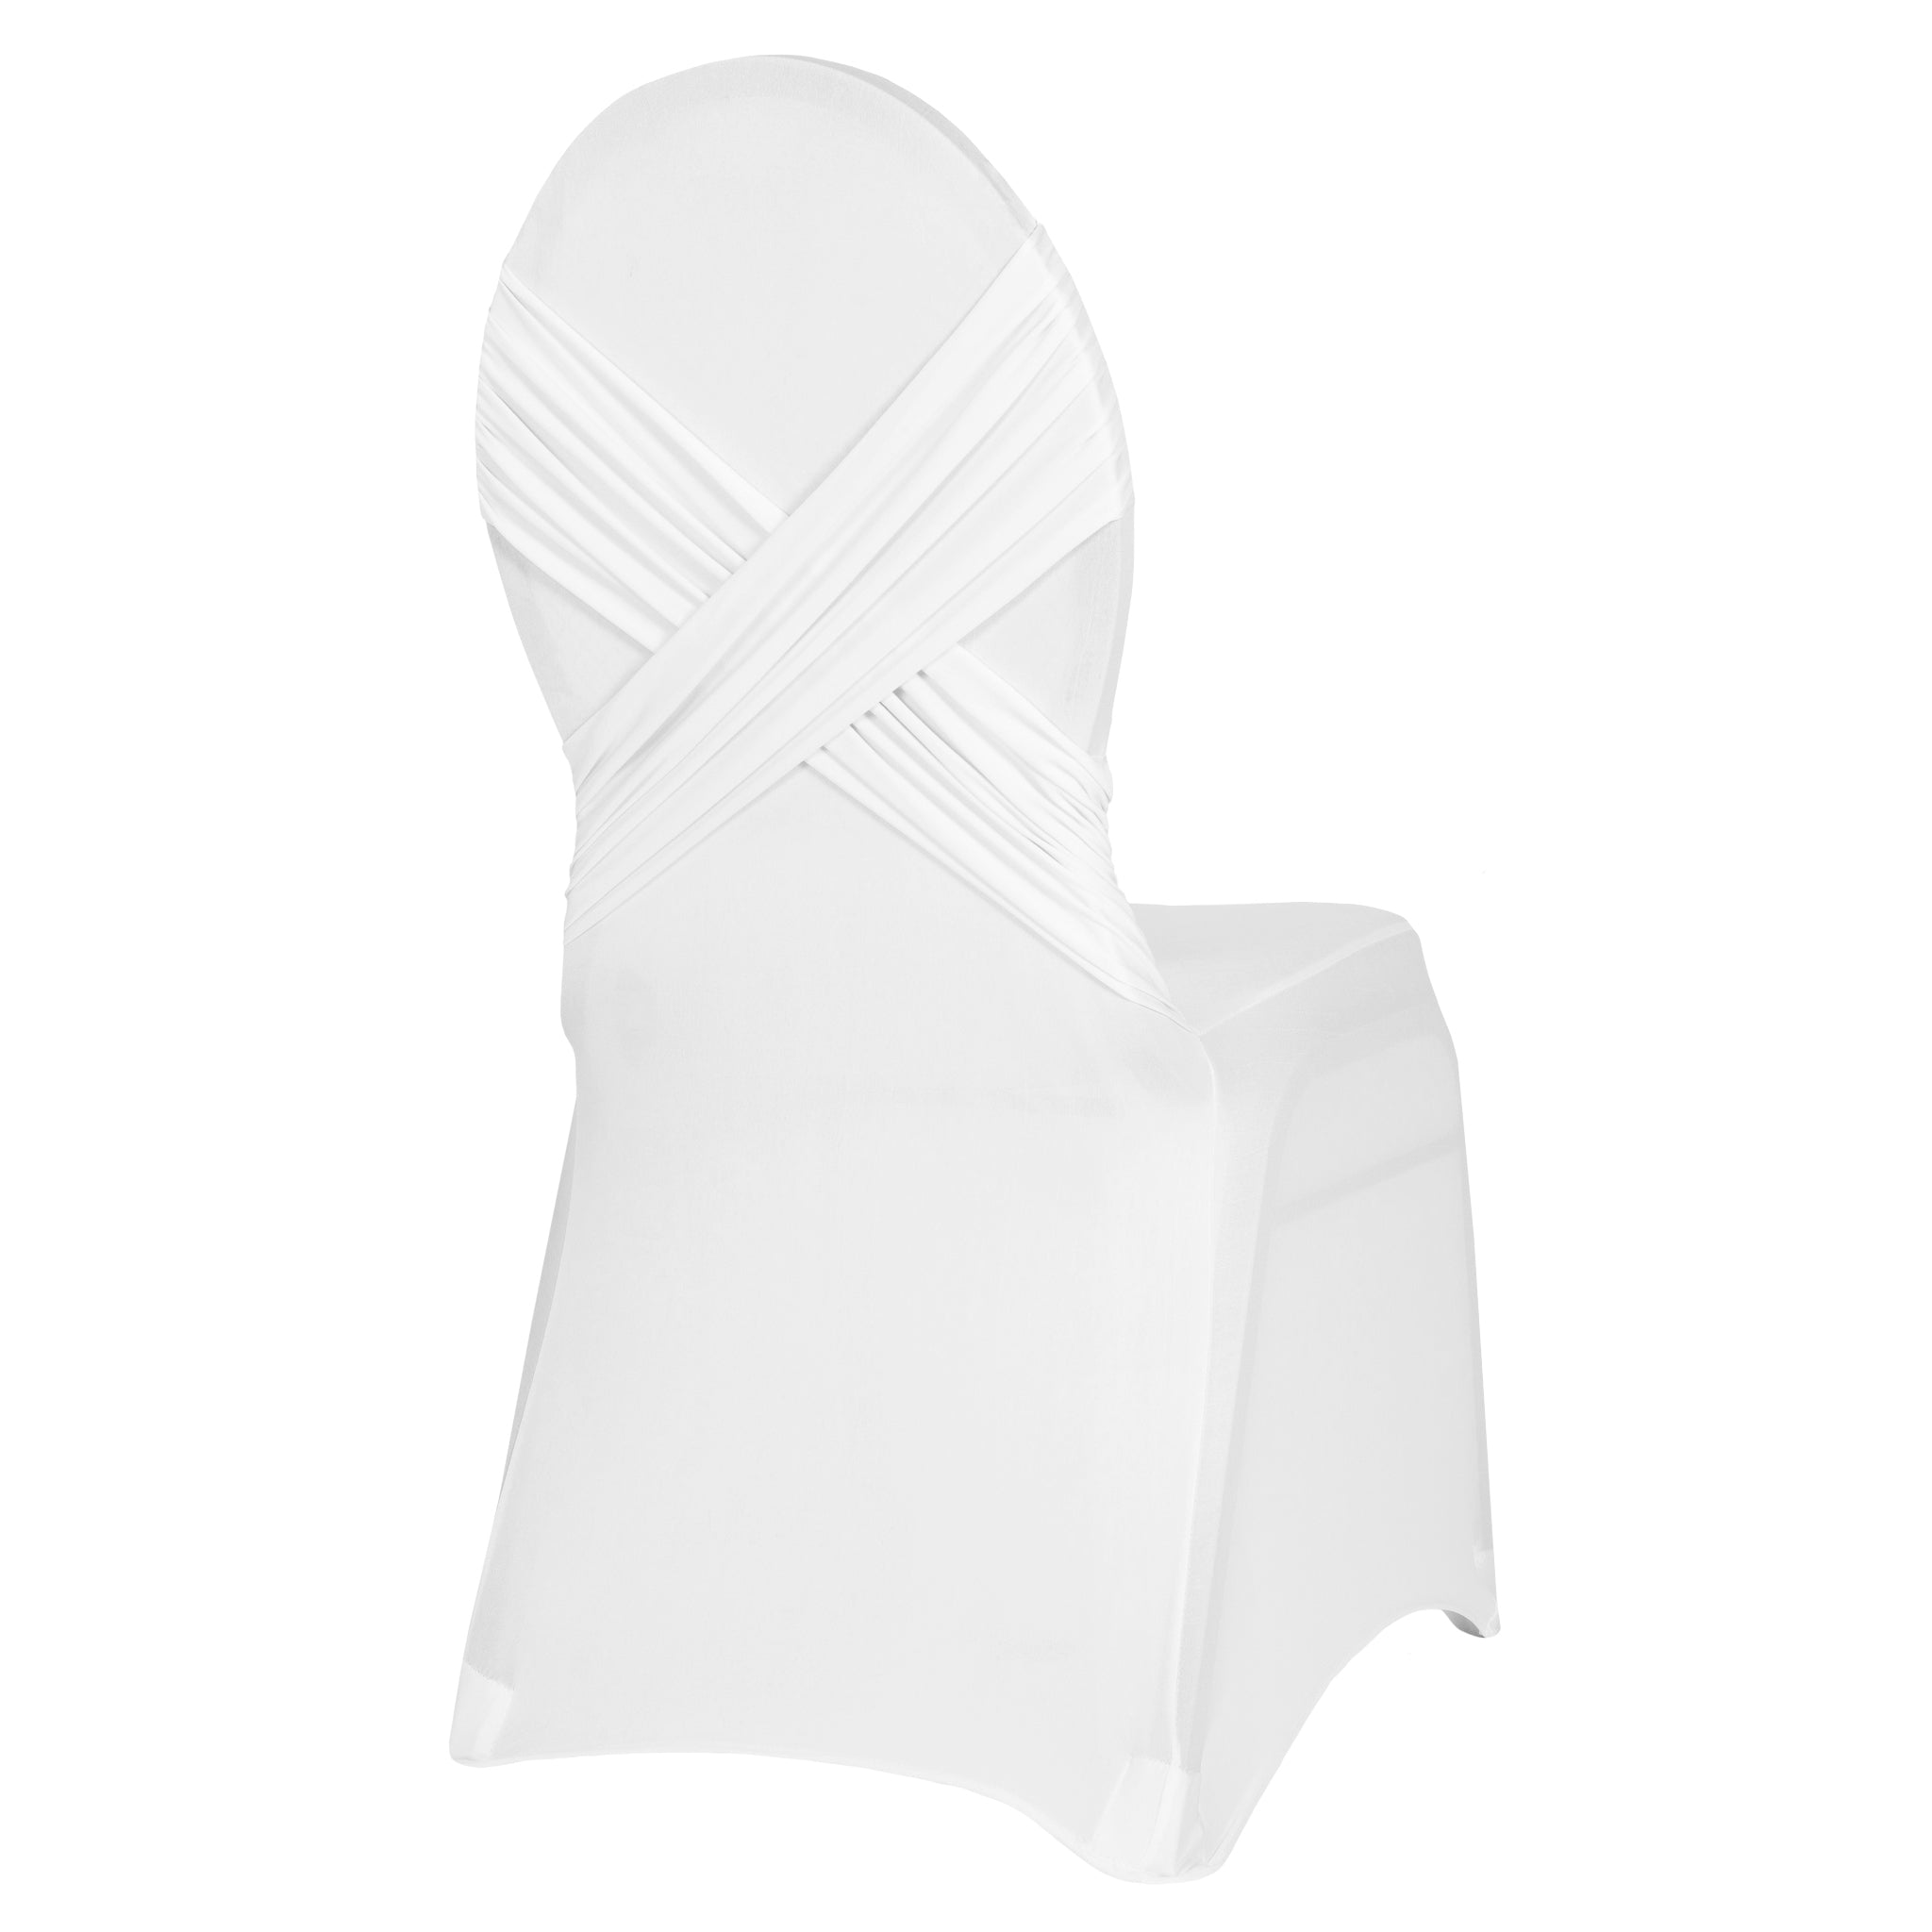 Pleasing Spandex Chair Covers For Sale In Johannesburg Unemploymentrelief Wooden Chair Designs For Living Room Unemploymentrelieforg